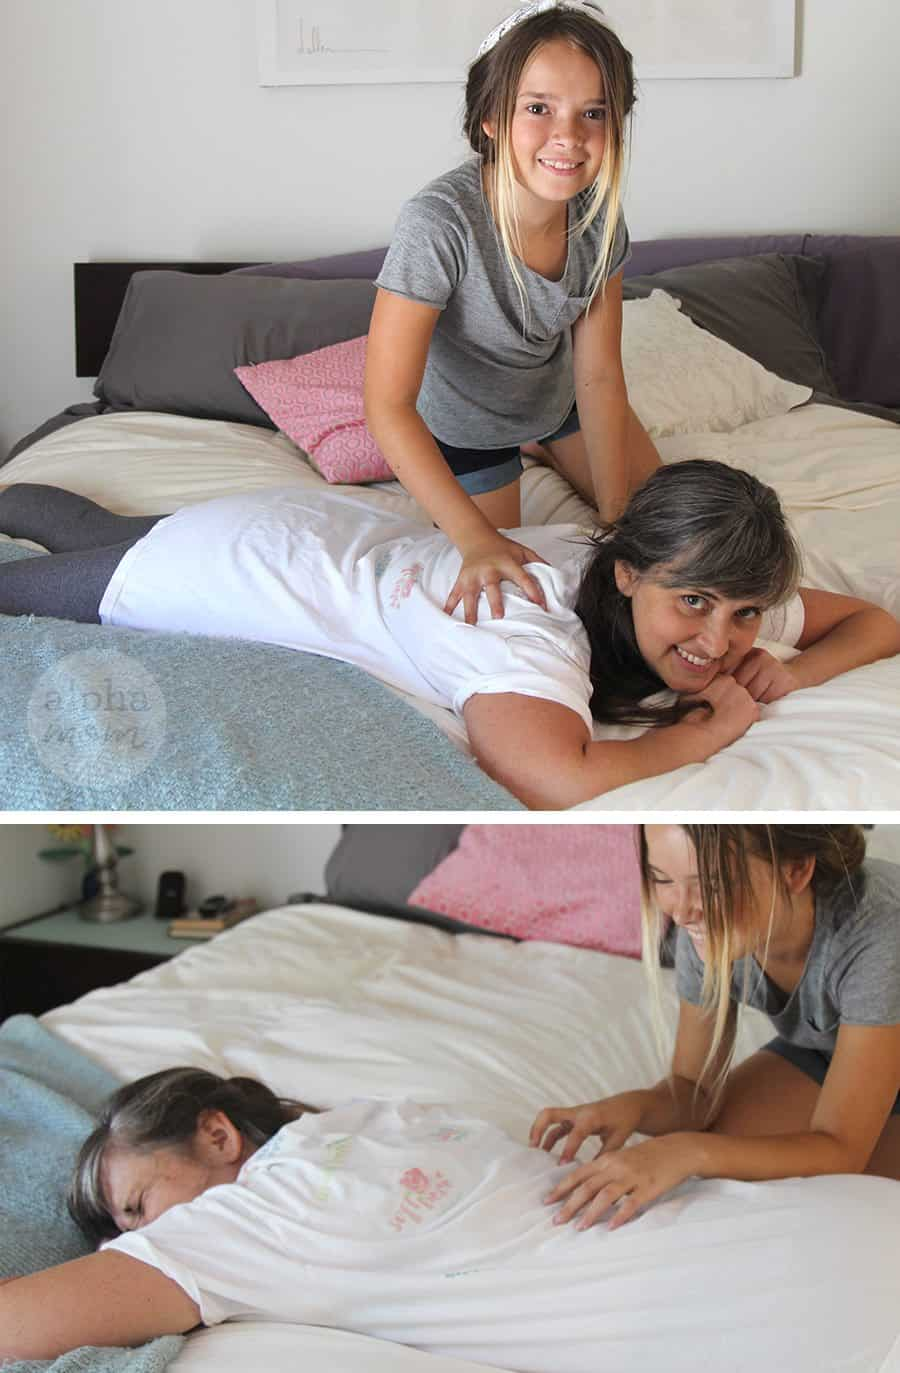 Girl giving mom a back massage